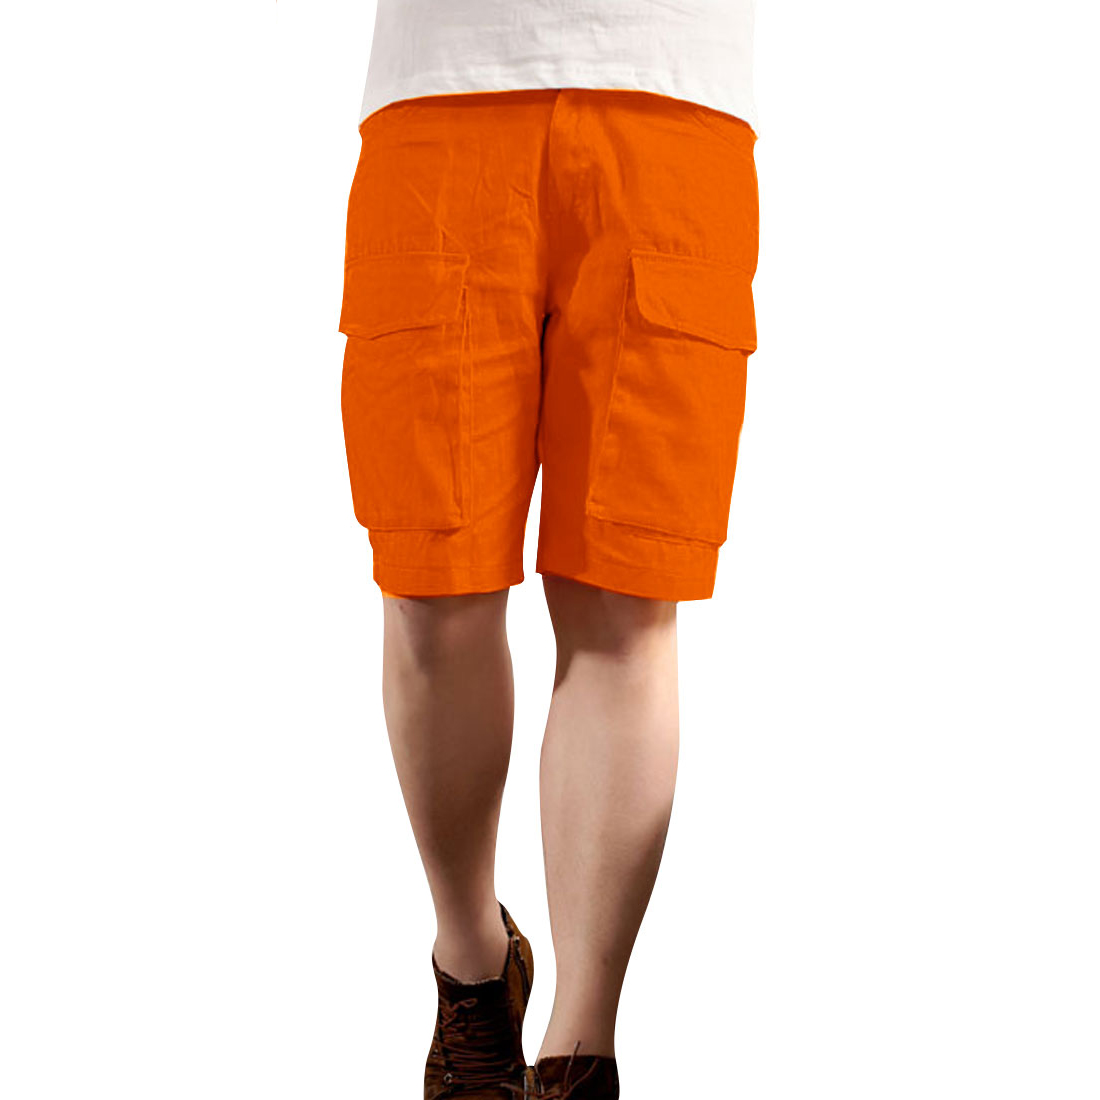 Men Buttoned Flap Hip Pockets Zipper Fly Shorts Pants Orange W30